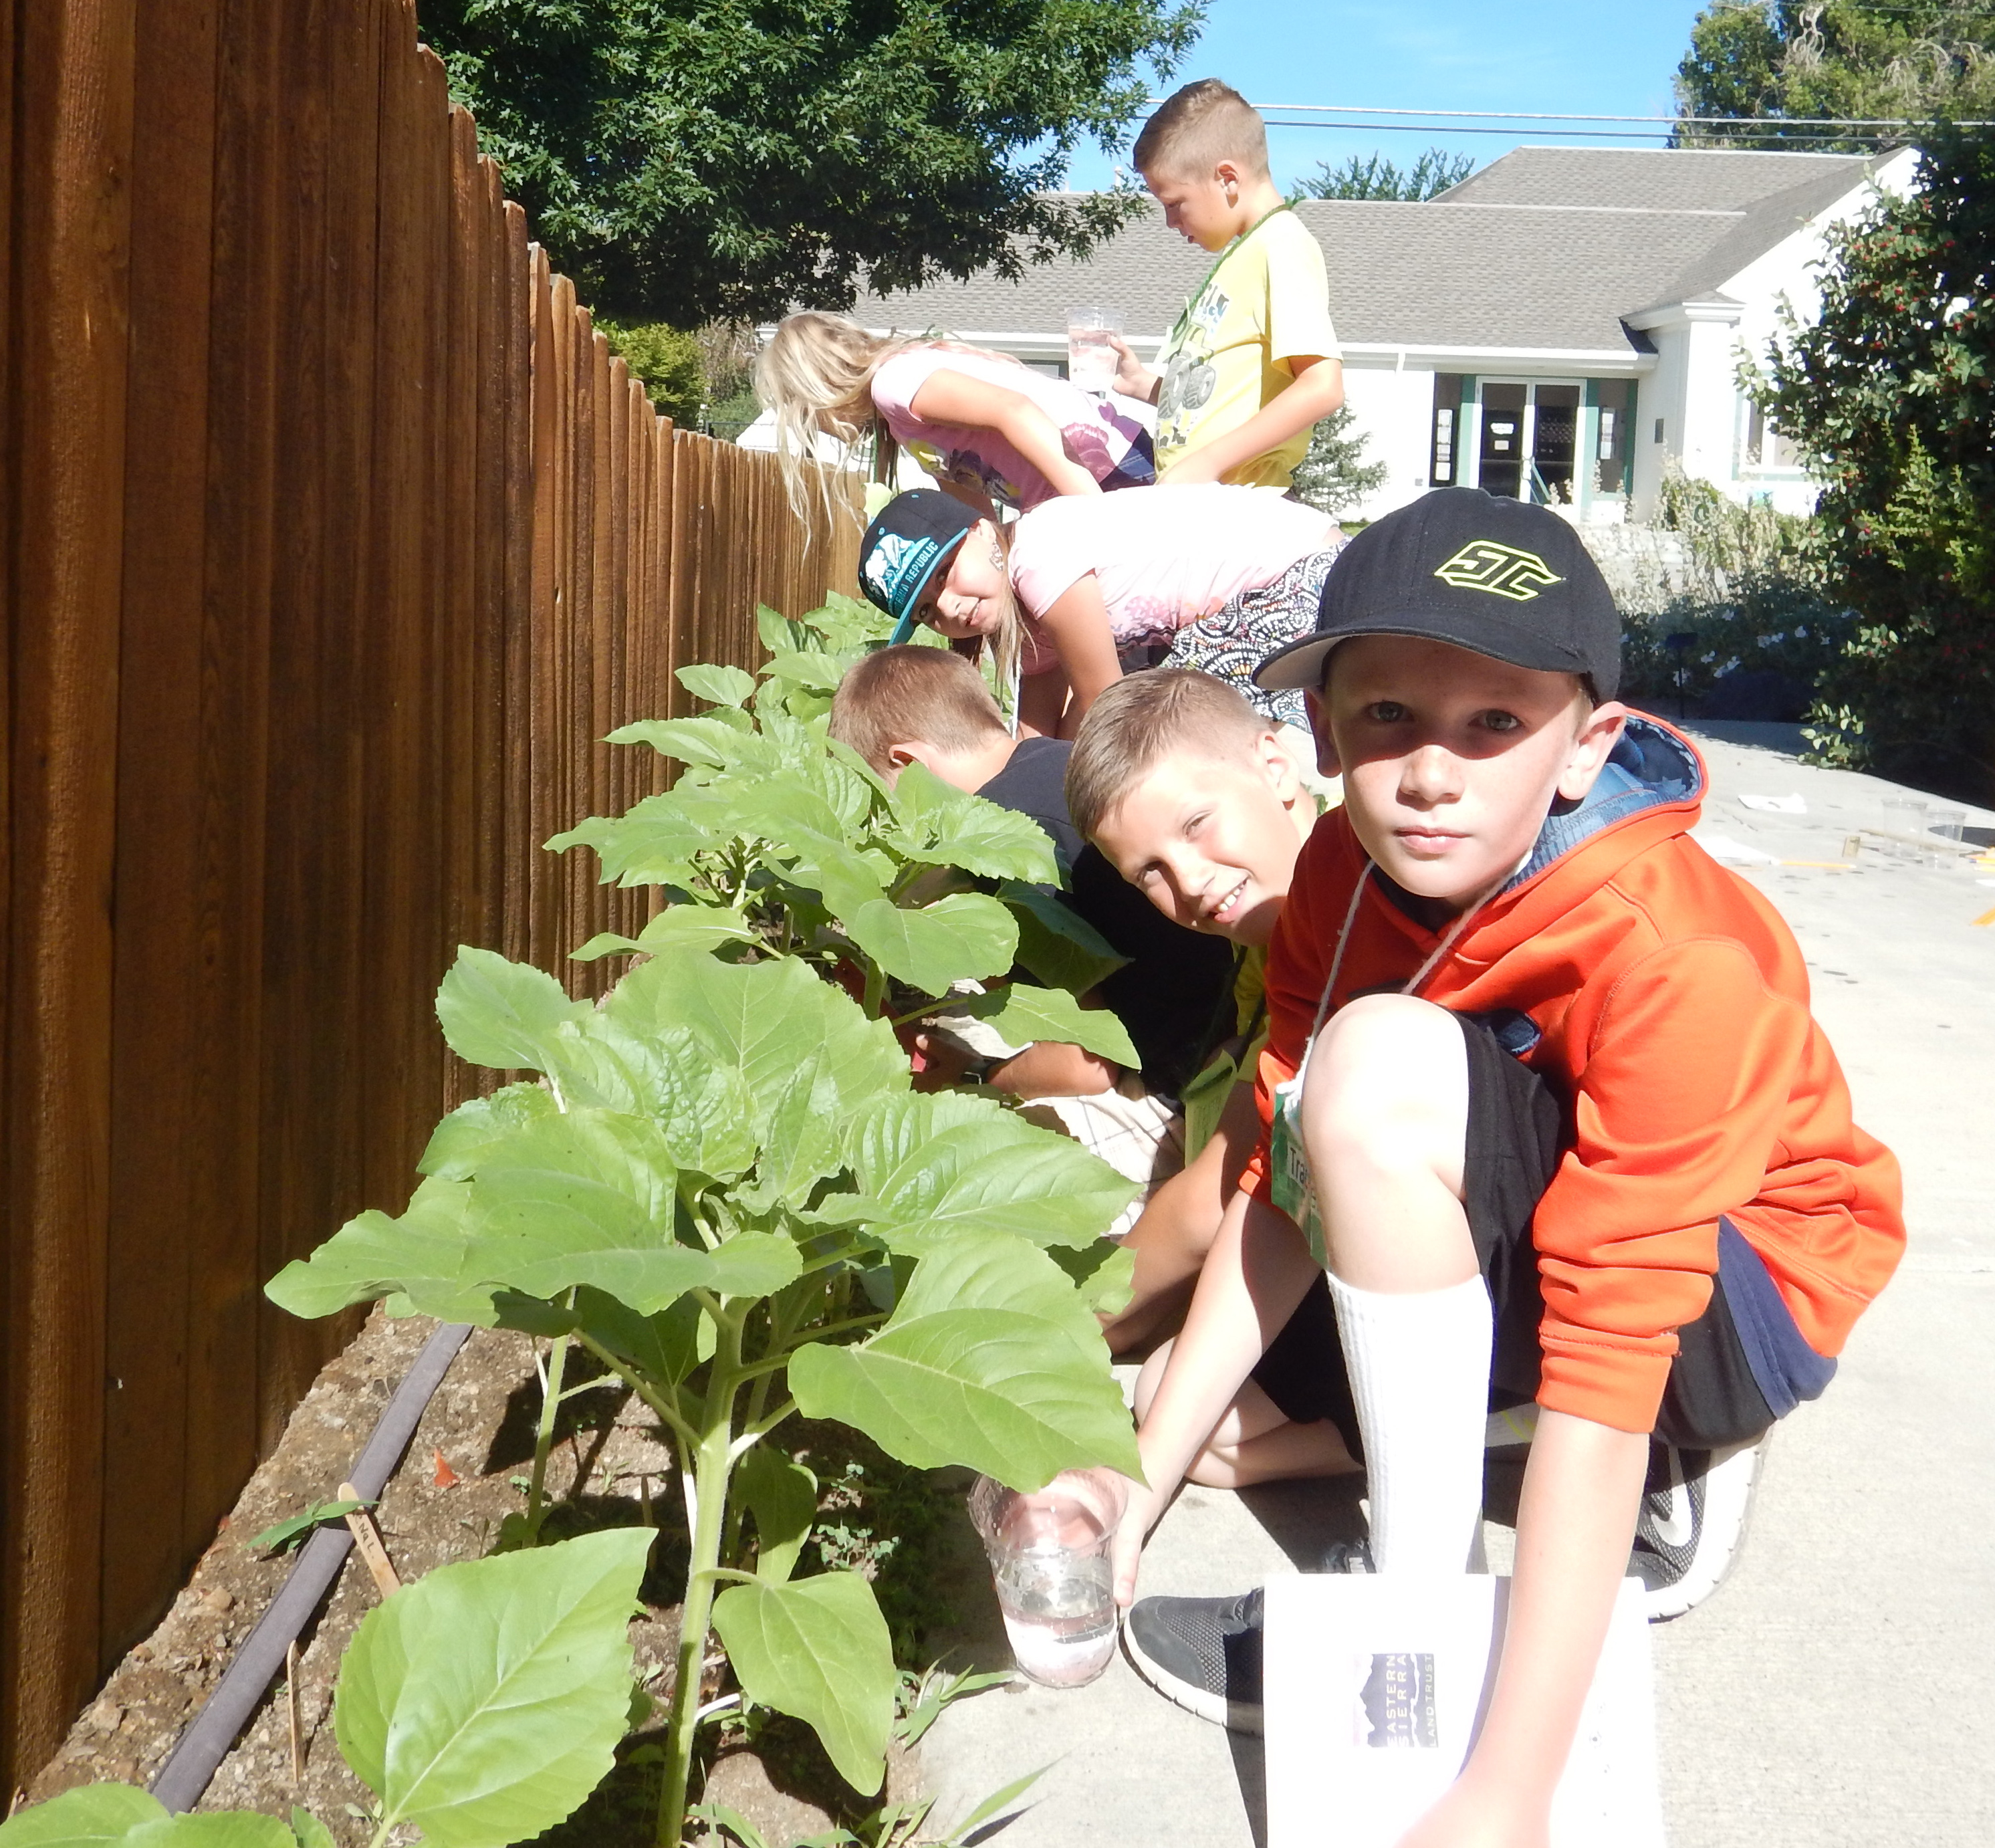 Trenton, Trevor and their classmates water their sunflowers and tracked their growth.